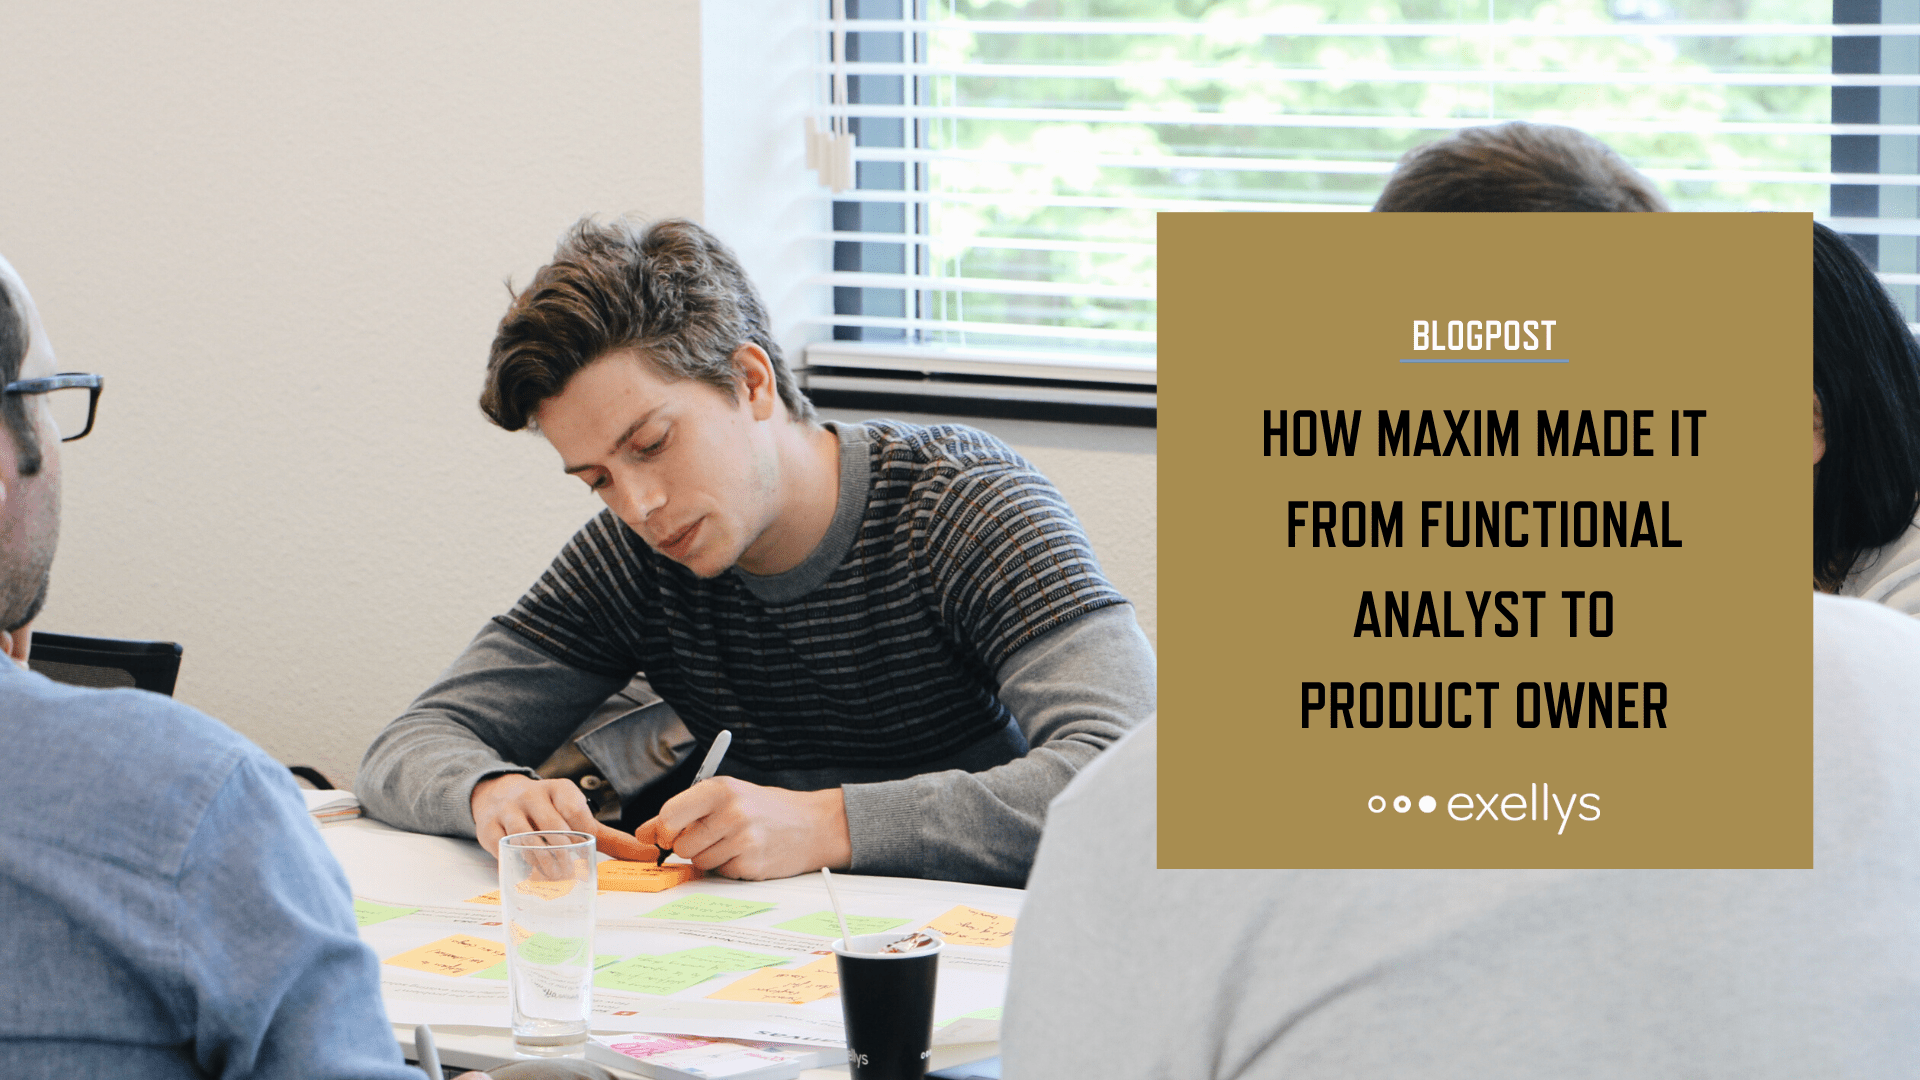 How Maxim made it from Functional Analyst to Product Owner - LinkedIn share image